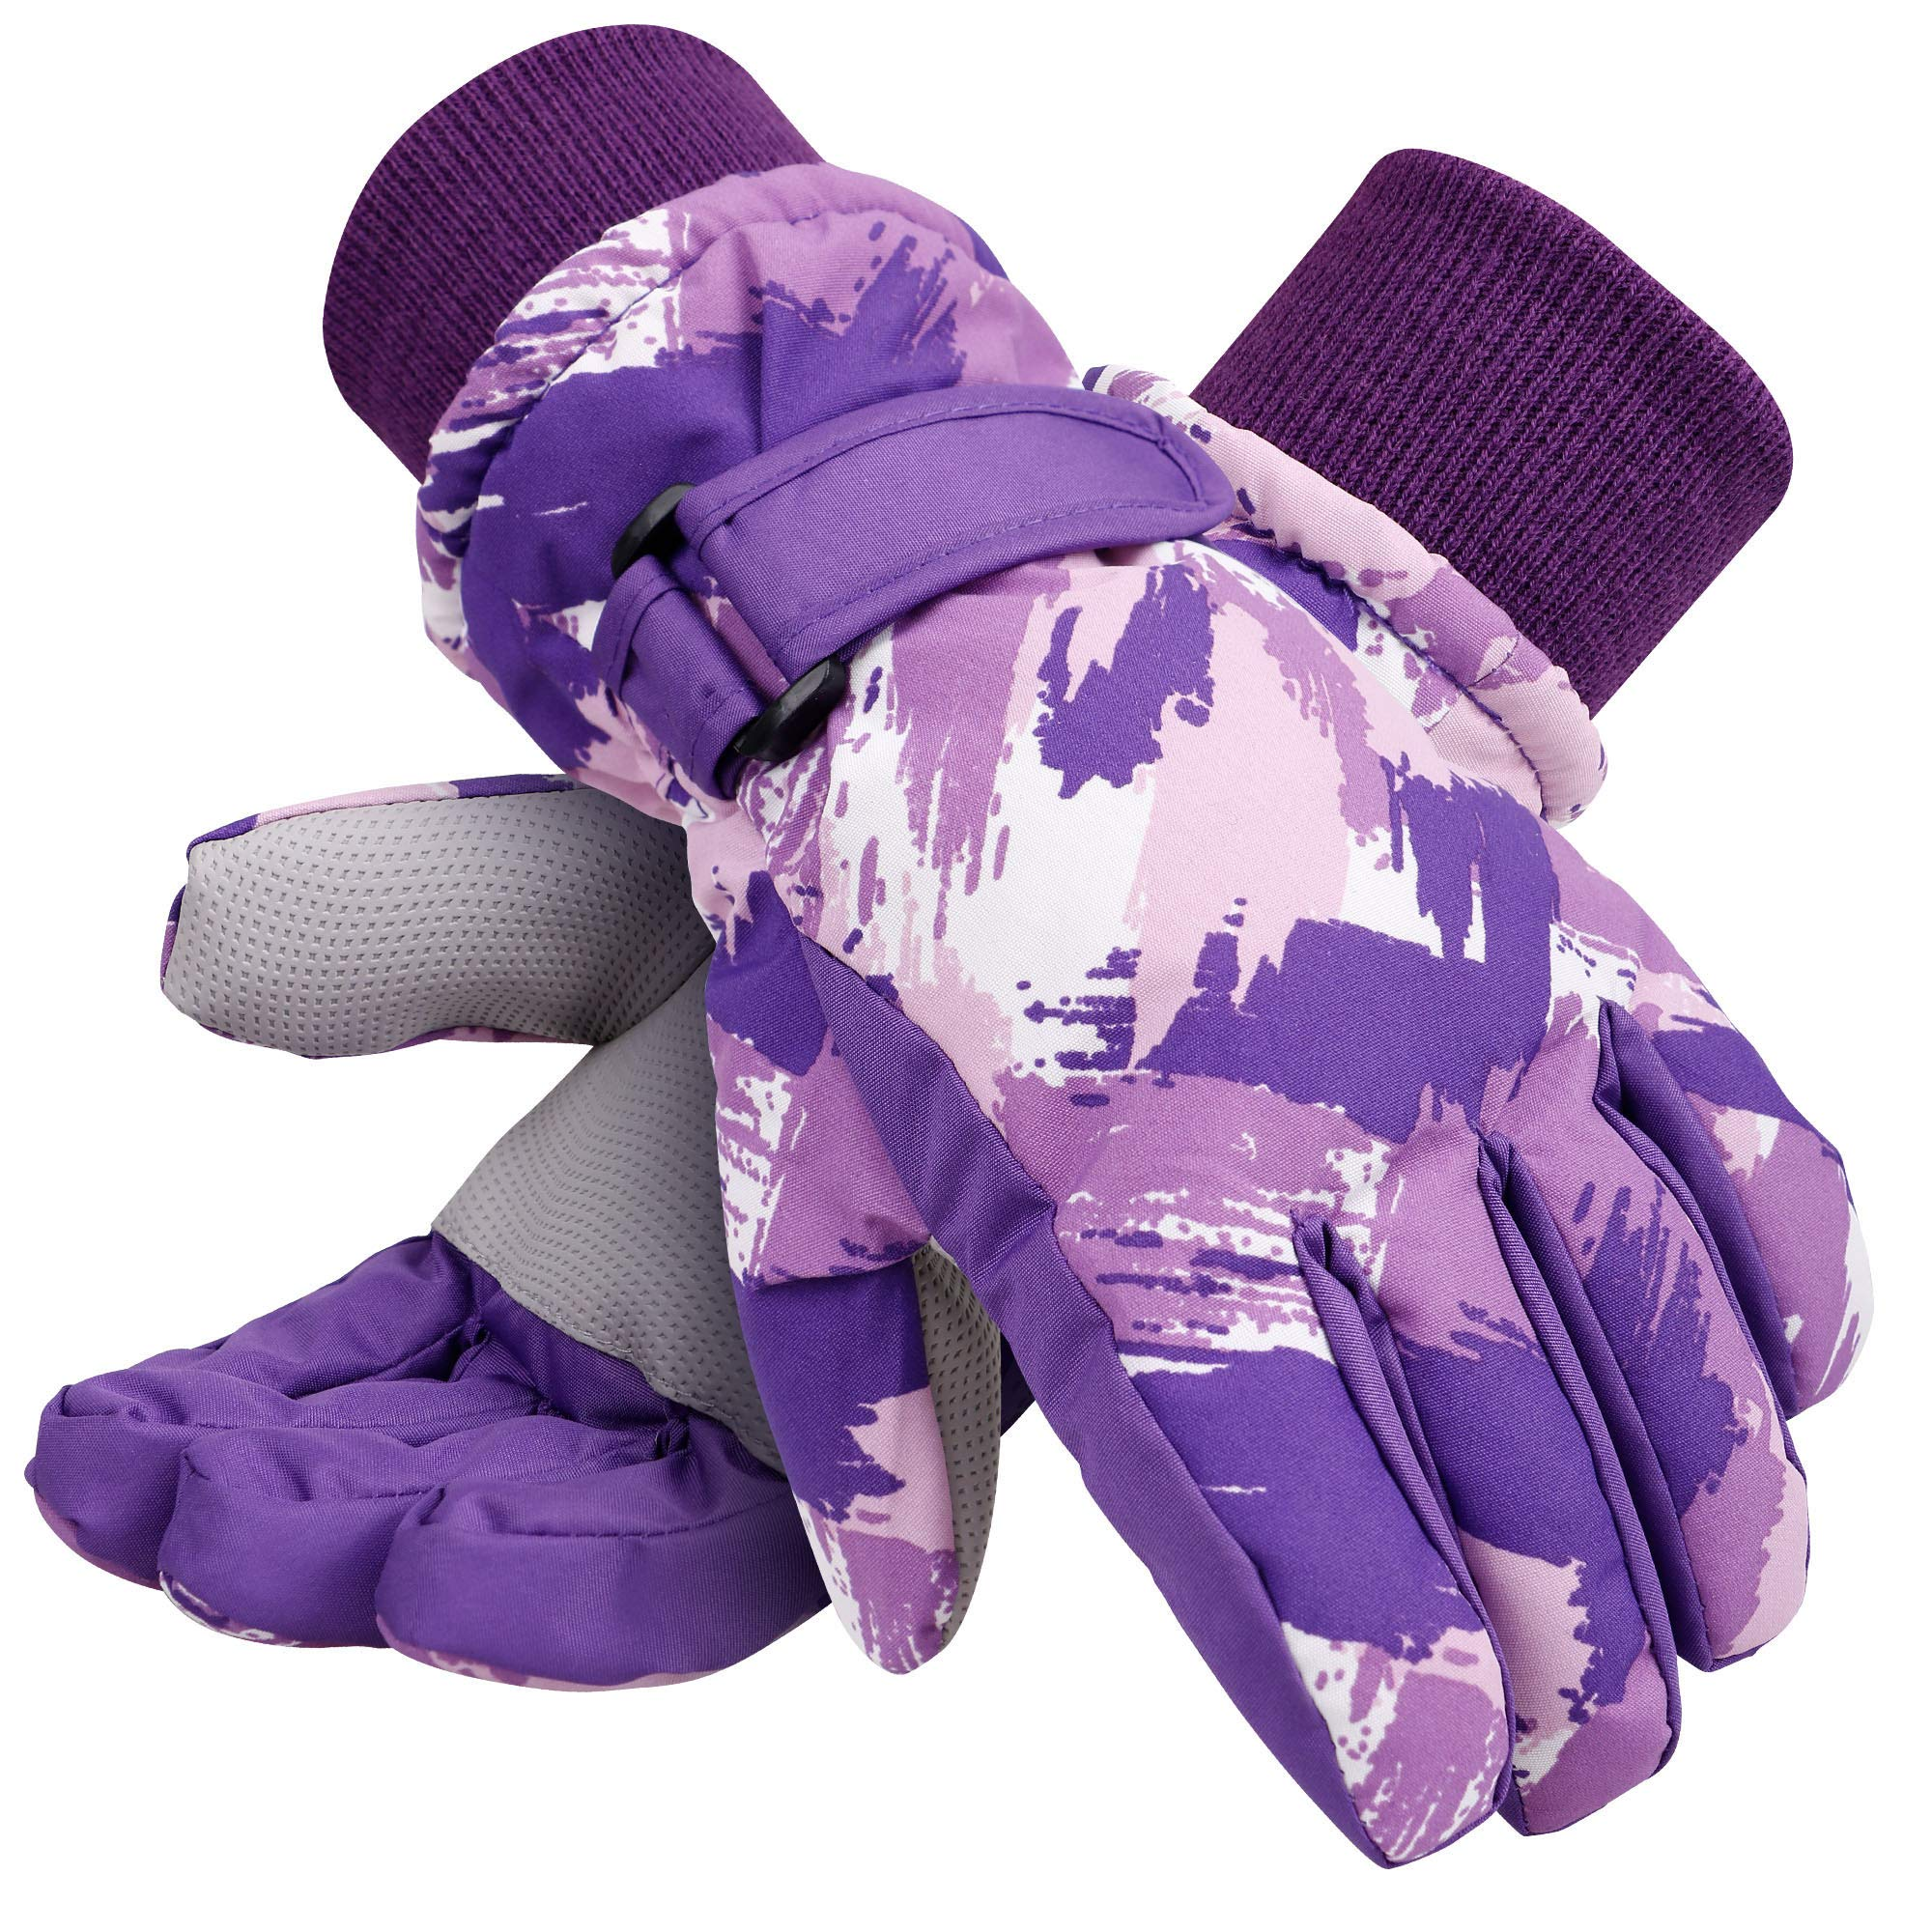 Galexia Zero Kids Winter Gloves Waterproof Thinsulate Lining Snow Ski Gloves L